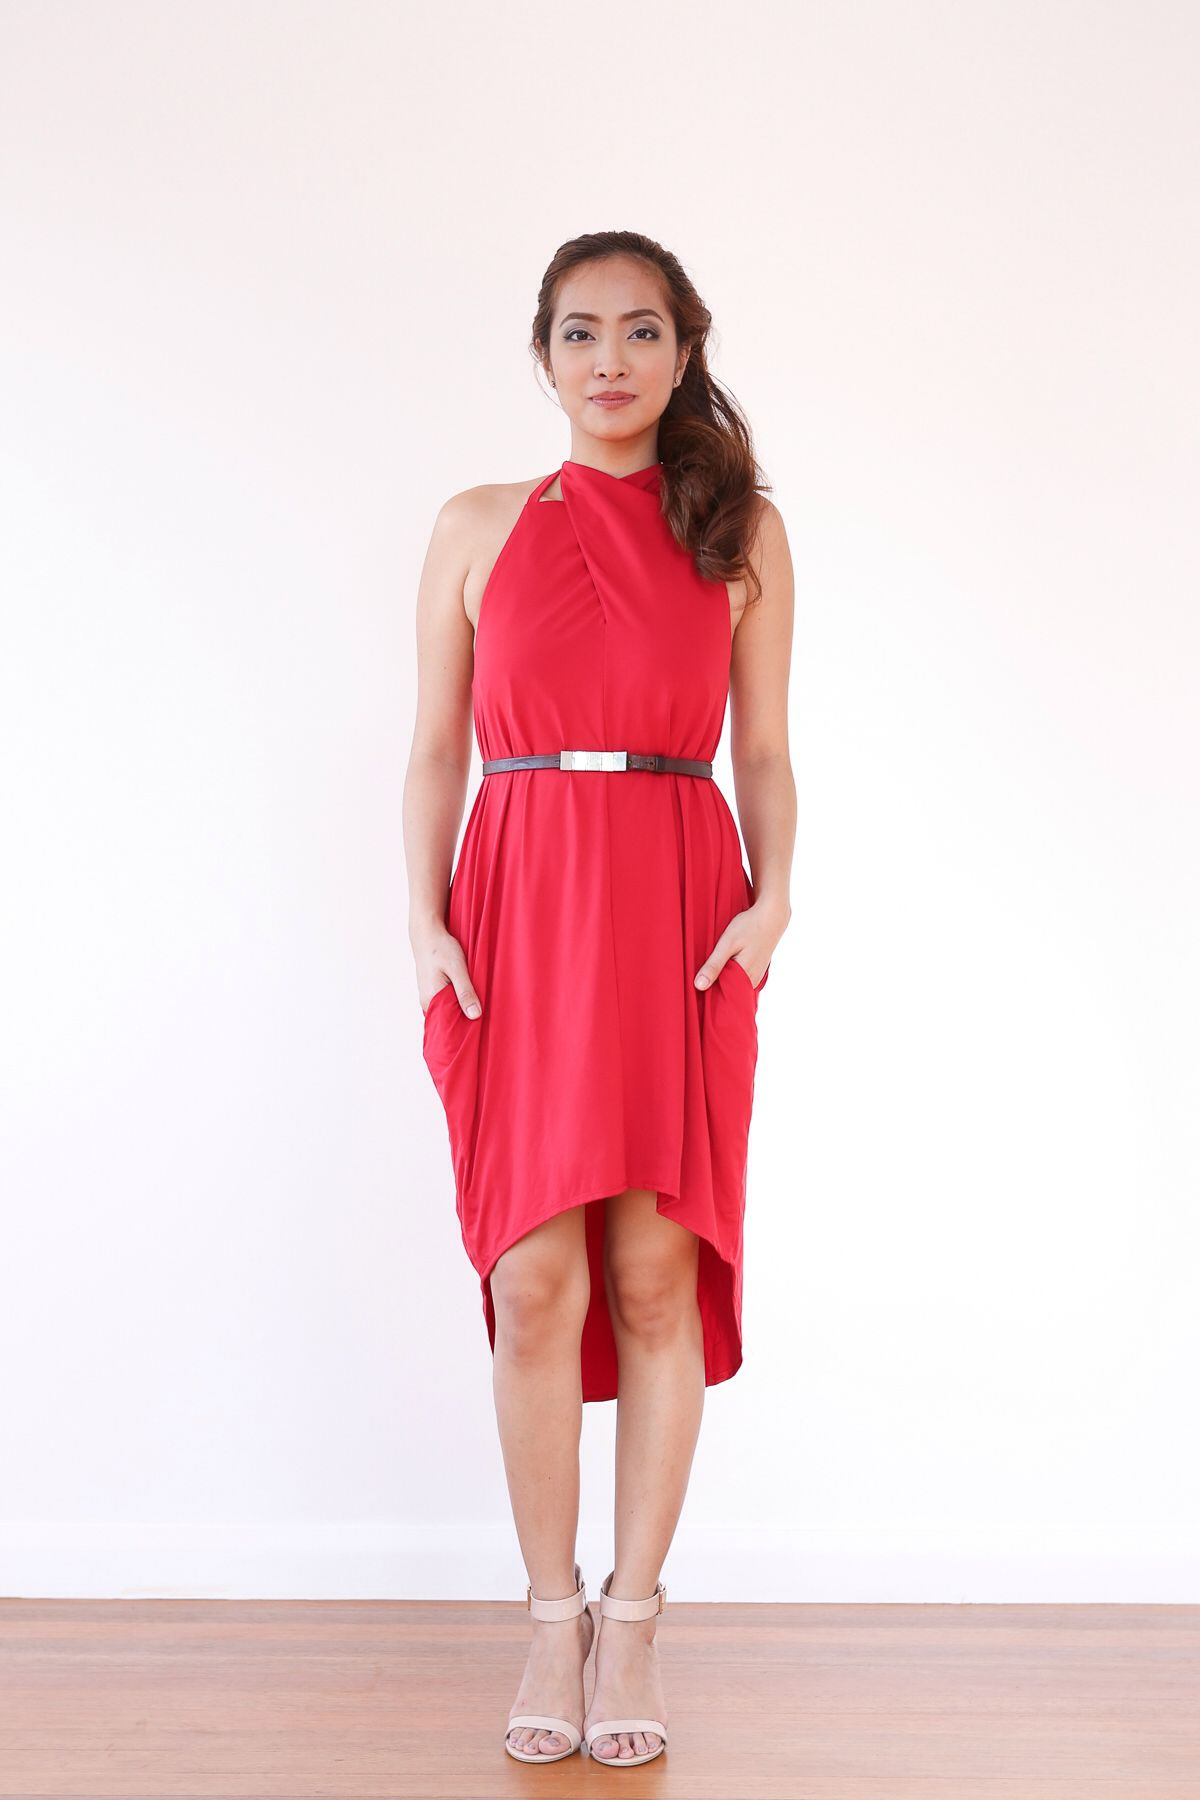 Multiway dress from Coco Chicka. ❤️